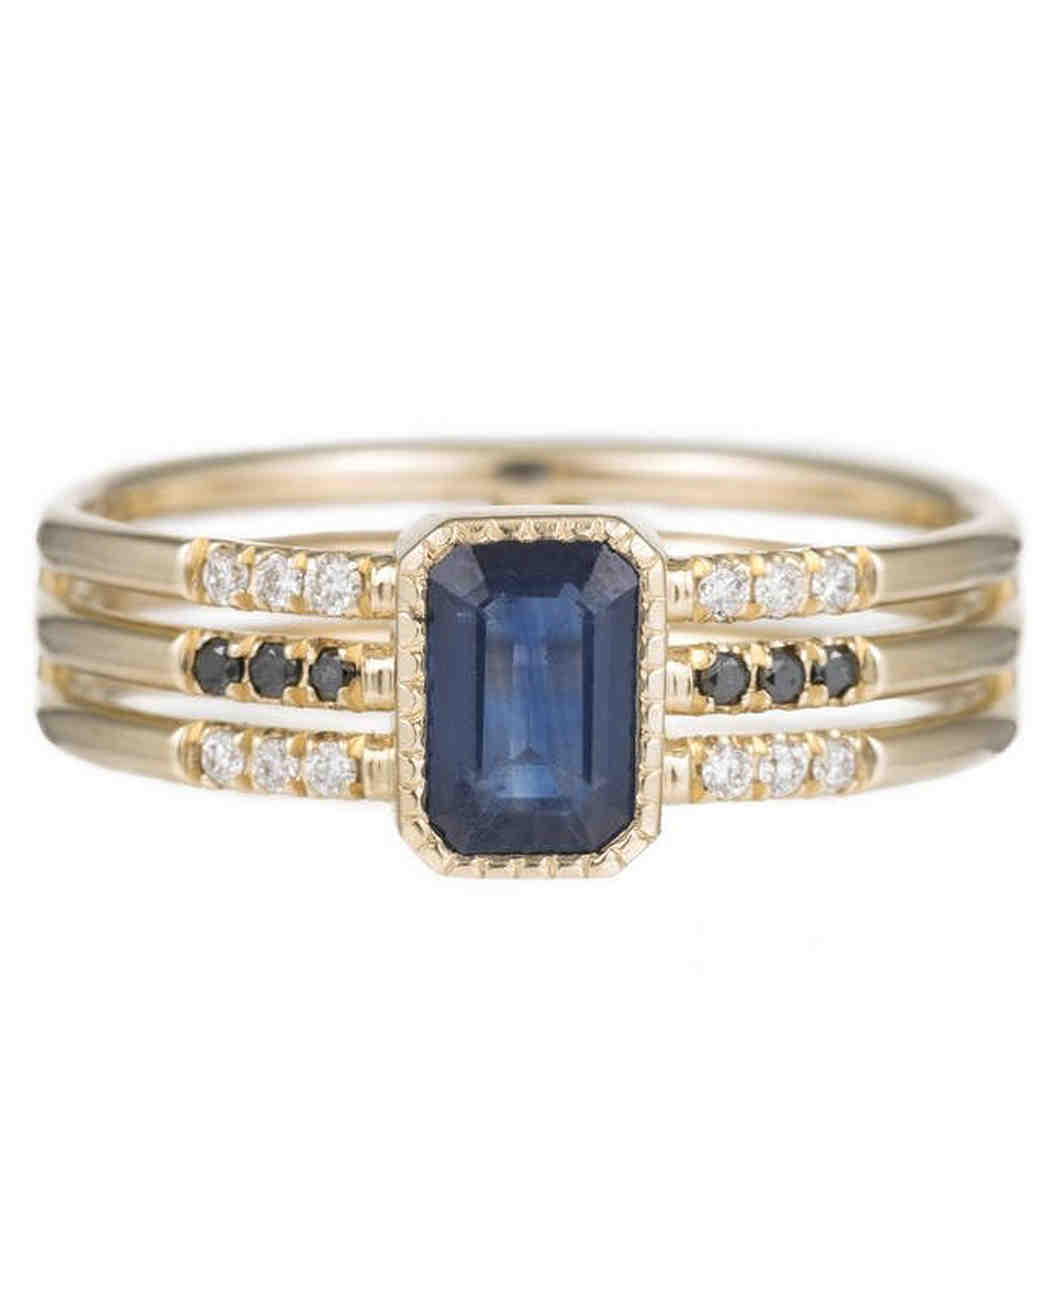 Jennie Kwon Designs Sapphire Emerald Cut Multi-Band Ring